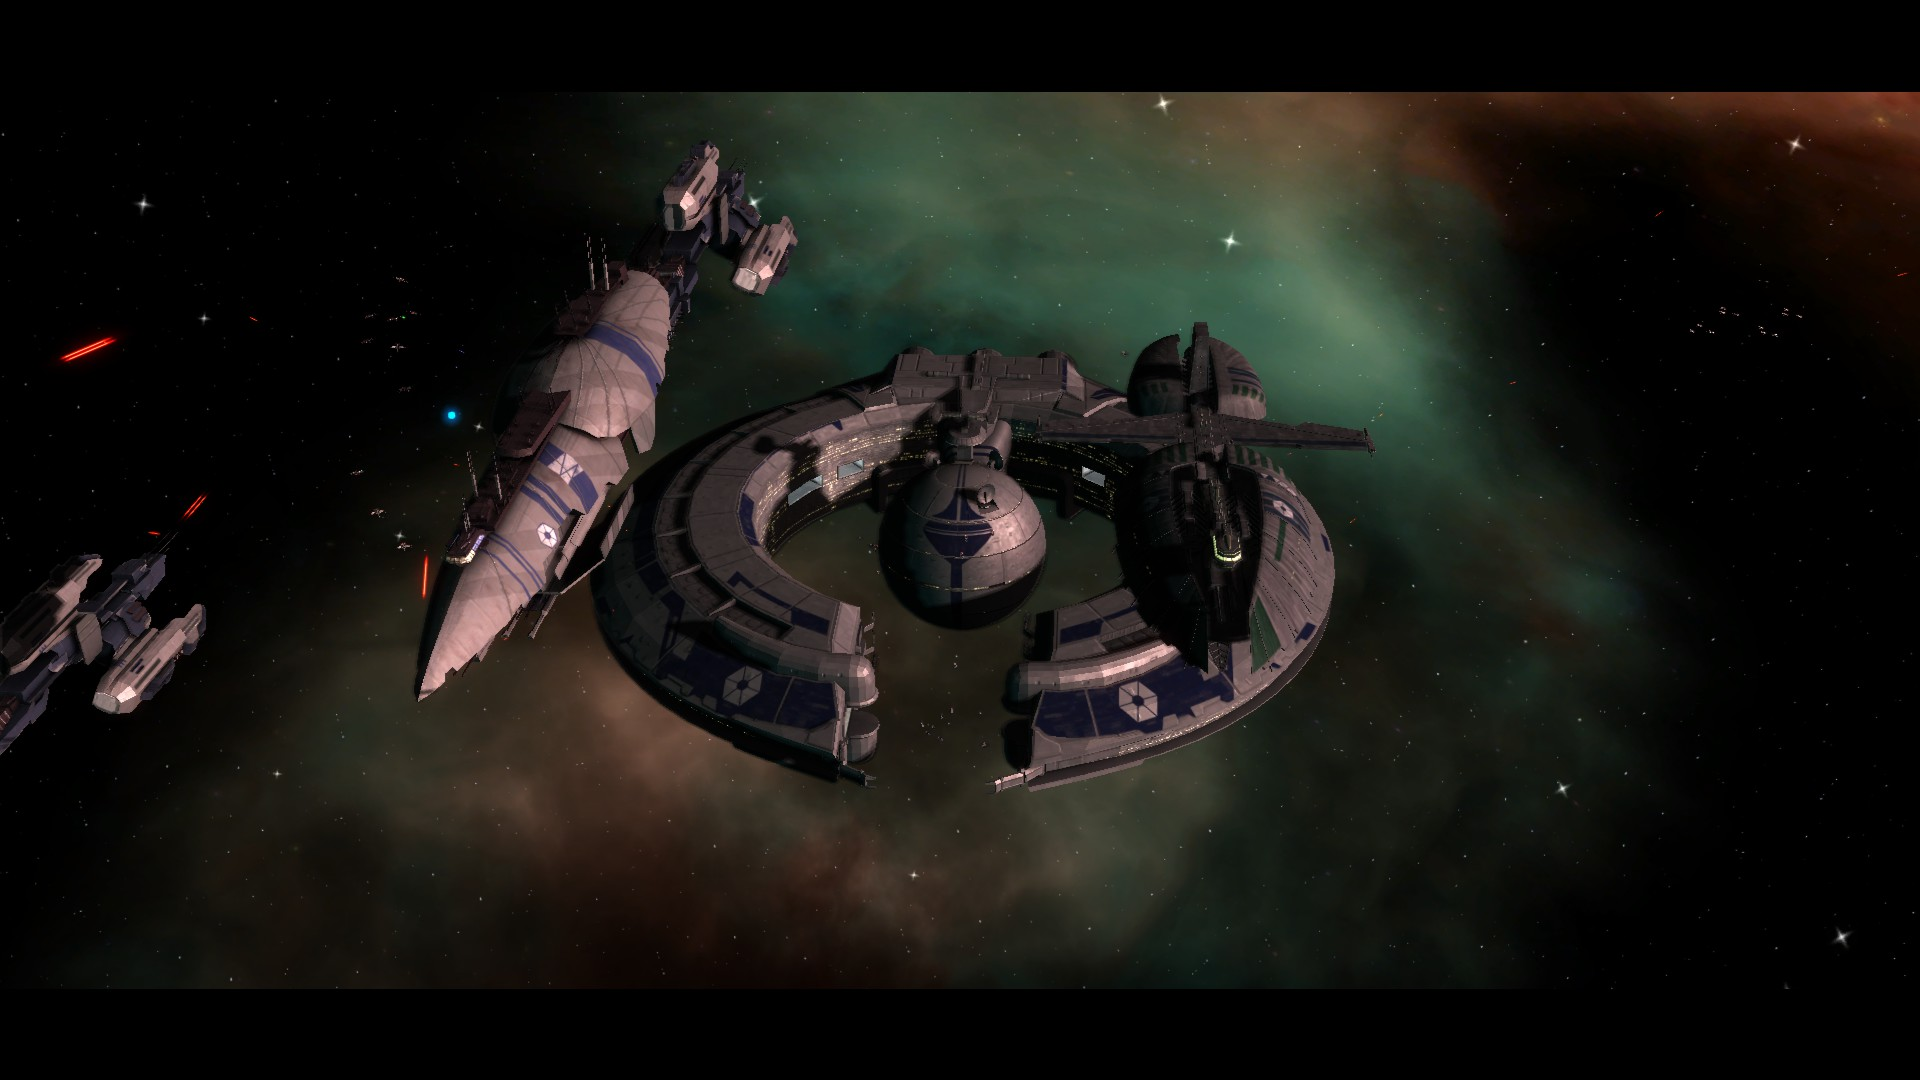 Cis On The Prowl Image Empire At War Expanded Fall Of The Republic Mod For Star Wars Empire At War Forces Of Corruption Mod Db